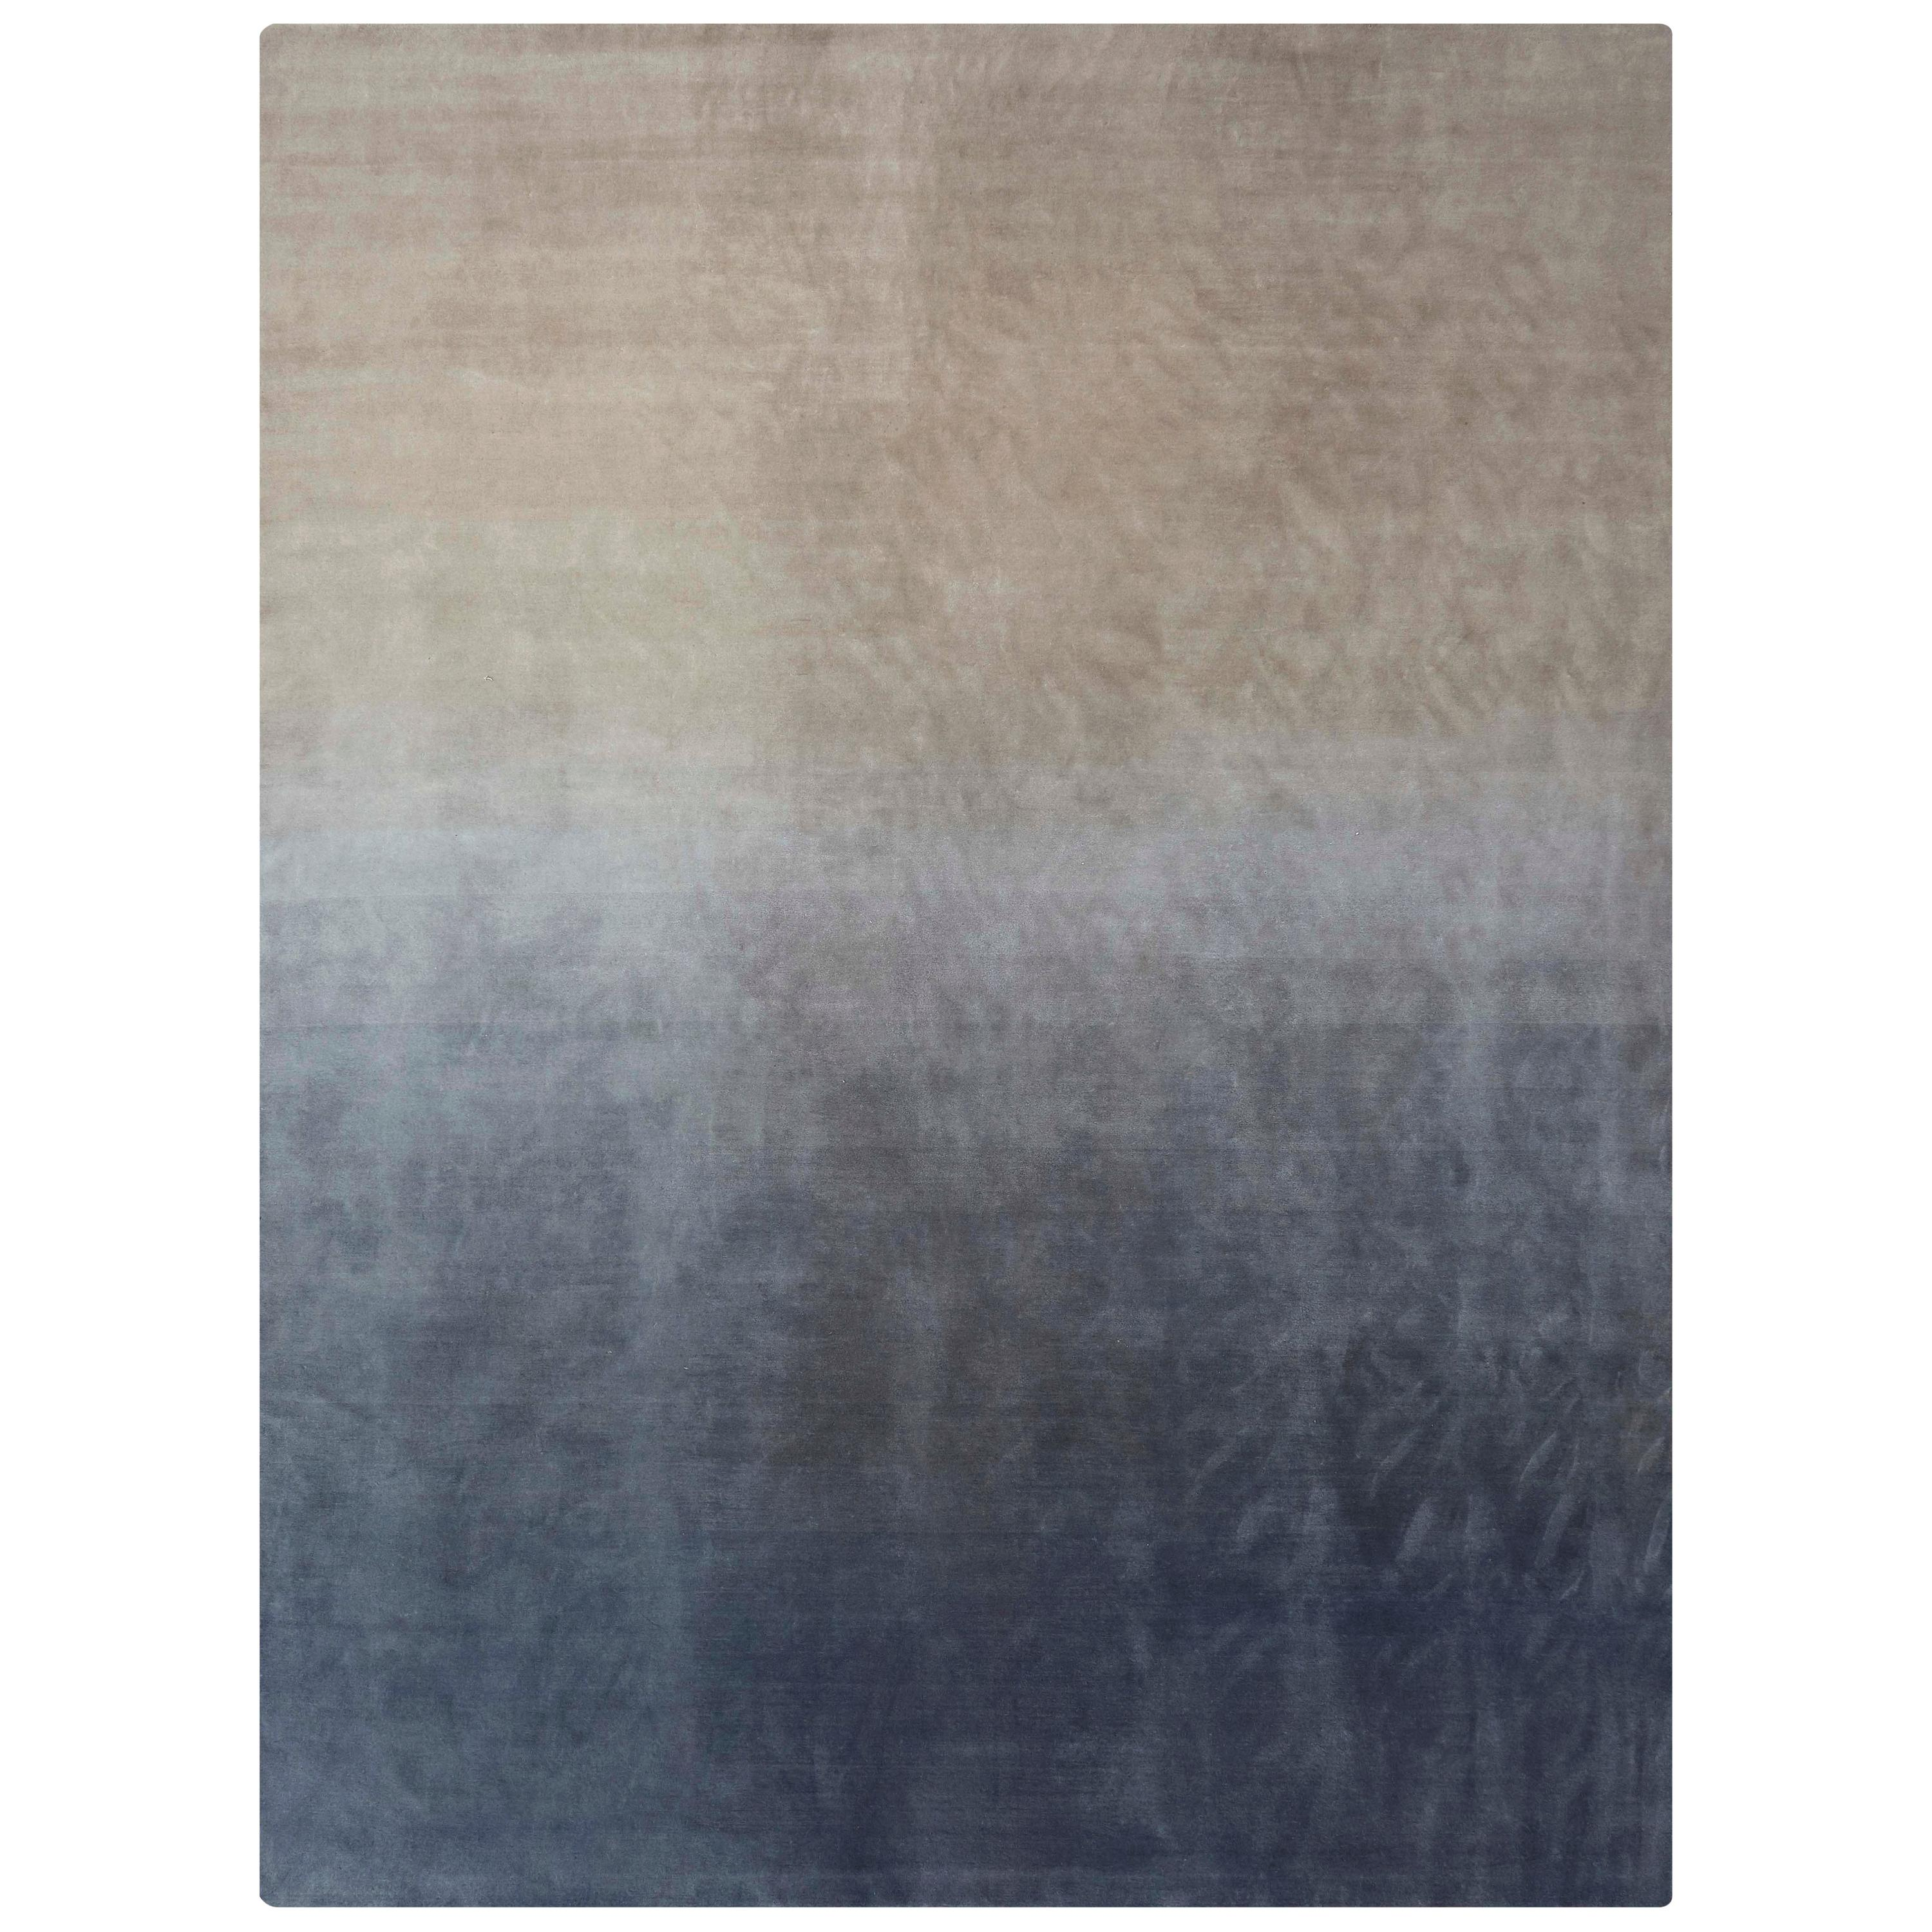 GAN Hand Knotted Degrade Large Rug by Patricia Urquiola